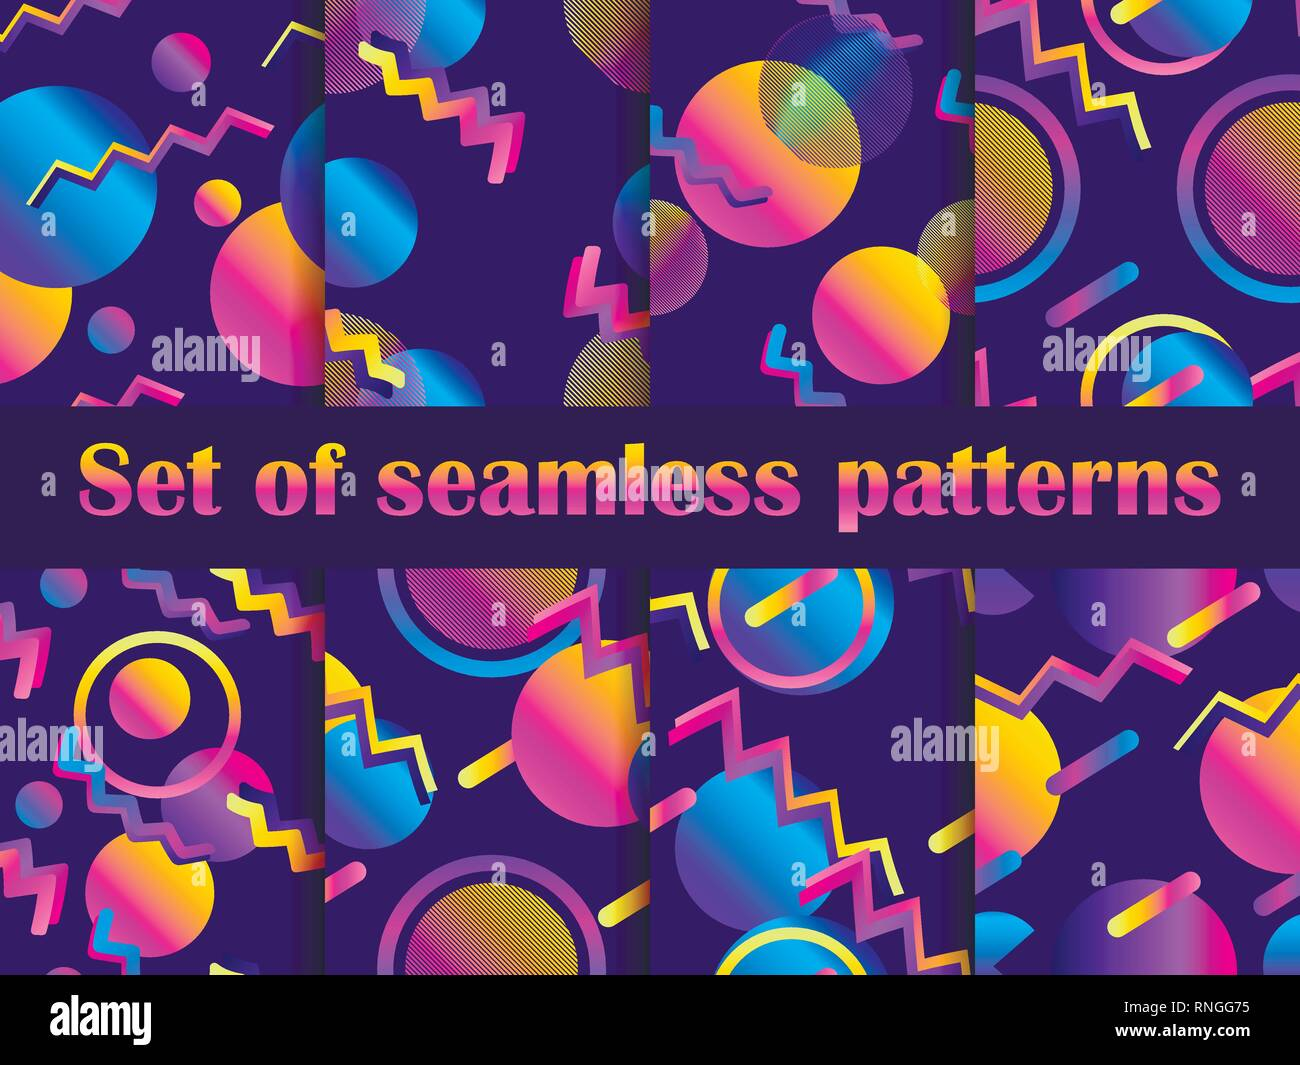 Futurism seamless pattern set  Liquid shape in the style of 80s